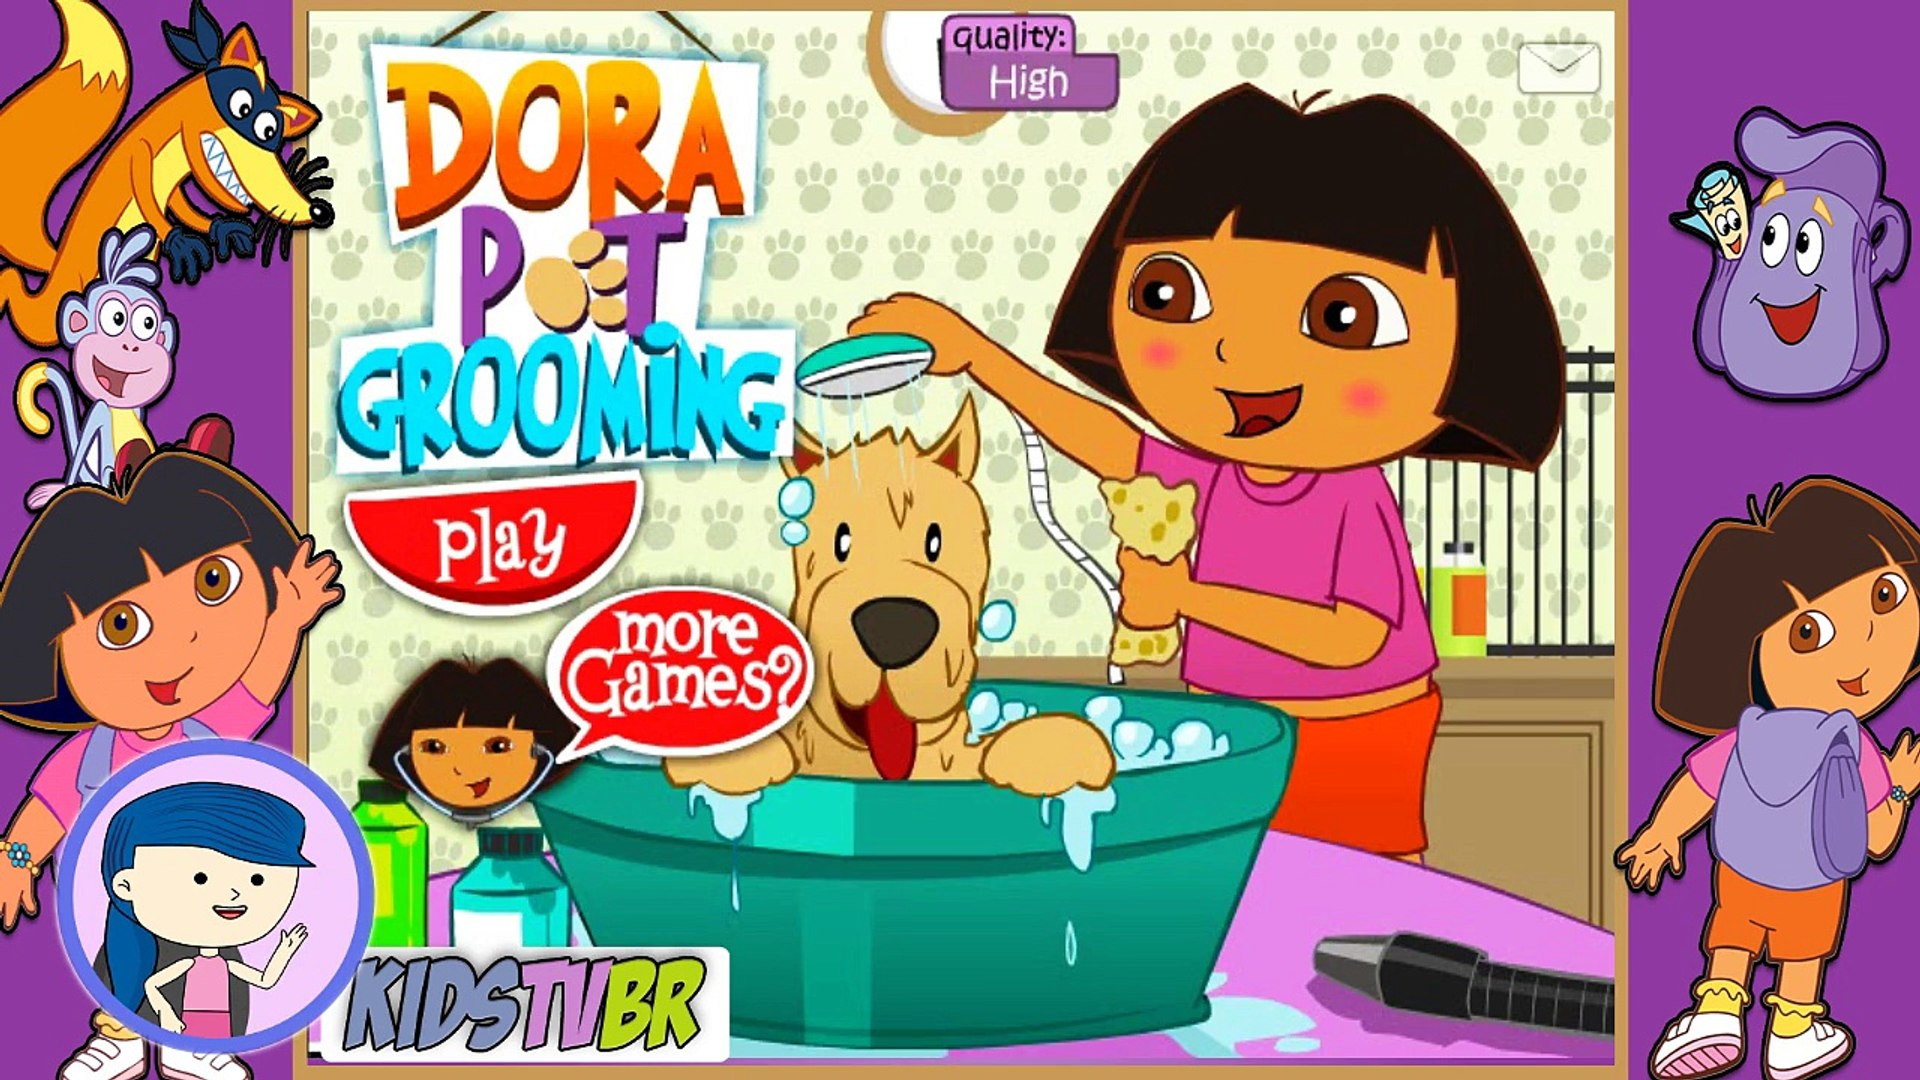 DORA AVENTUREIRA NO PET SHOP | DORA PET GROOMING | JOGOS COM EPISÓDIOS COMPLETOS | DORA GAMES | KIDS